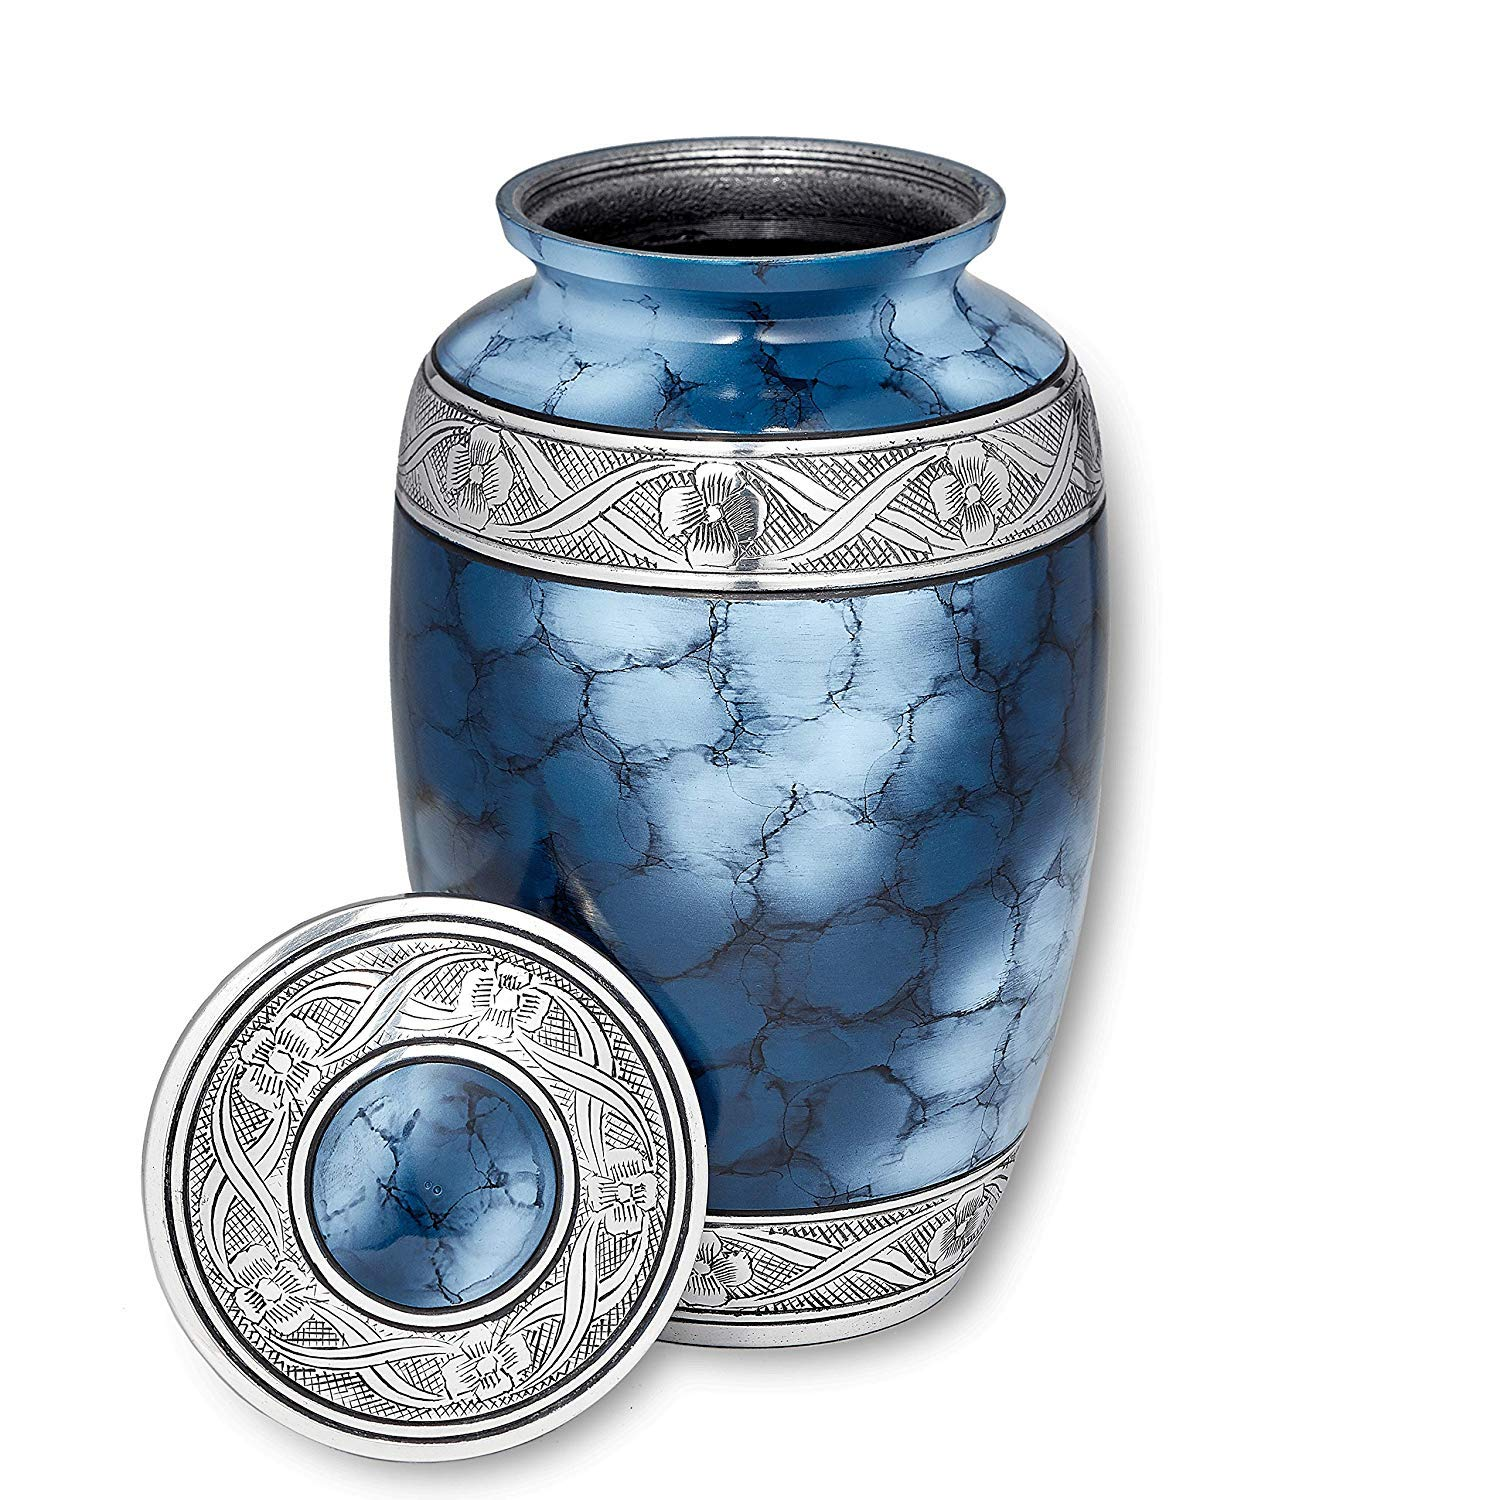 Cremation Urn for Ashes, for Adults up to 200lbs, Blue Funeral Burial Urns w Satin Bag for Human Ashes.